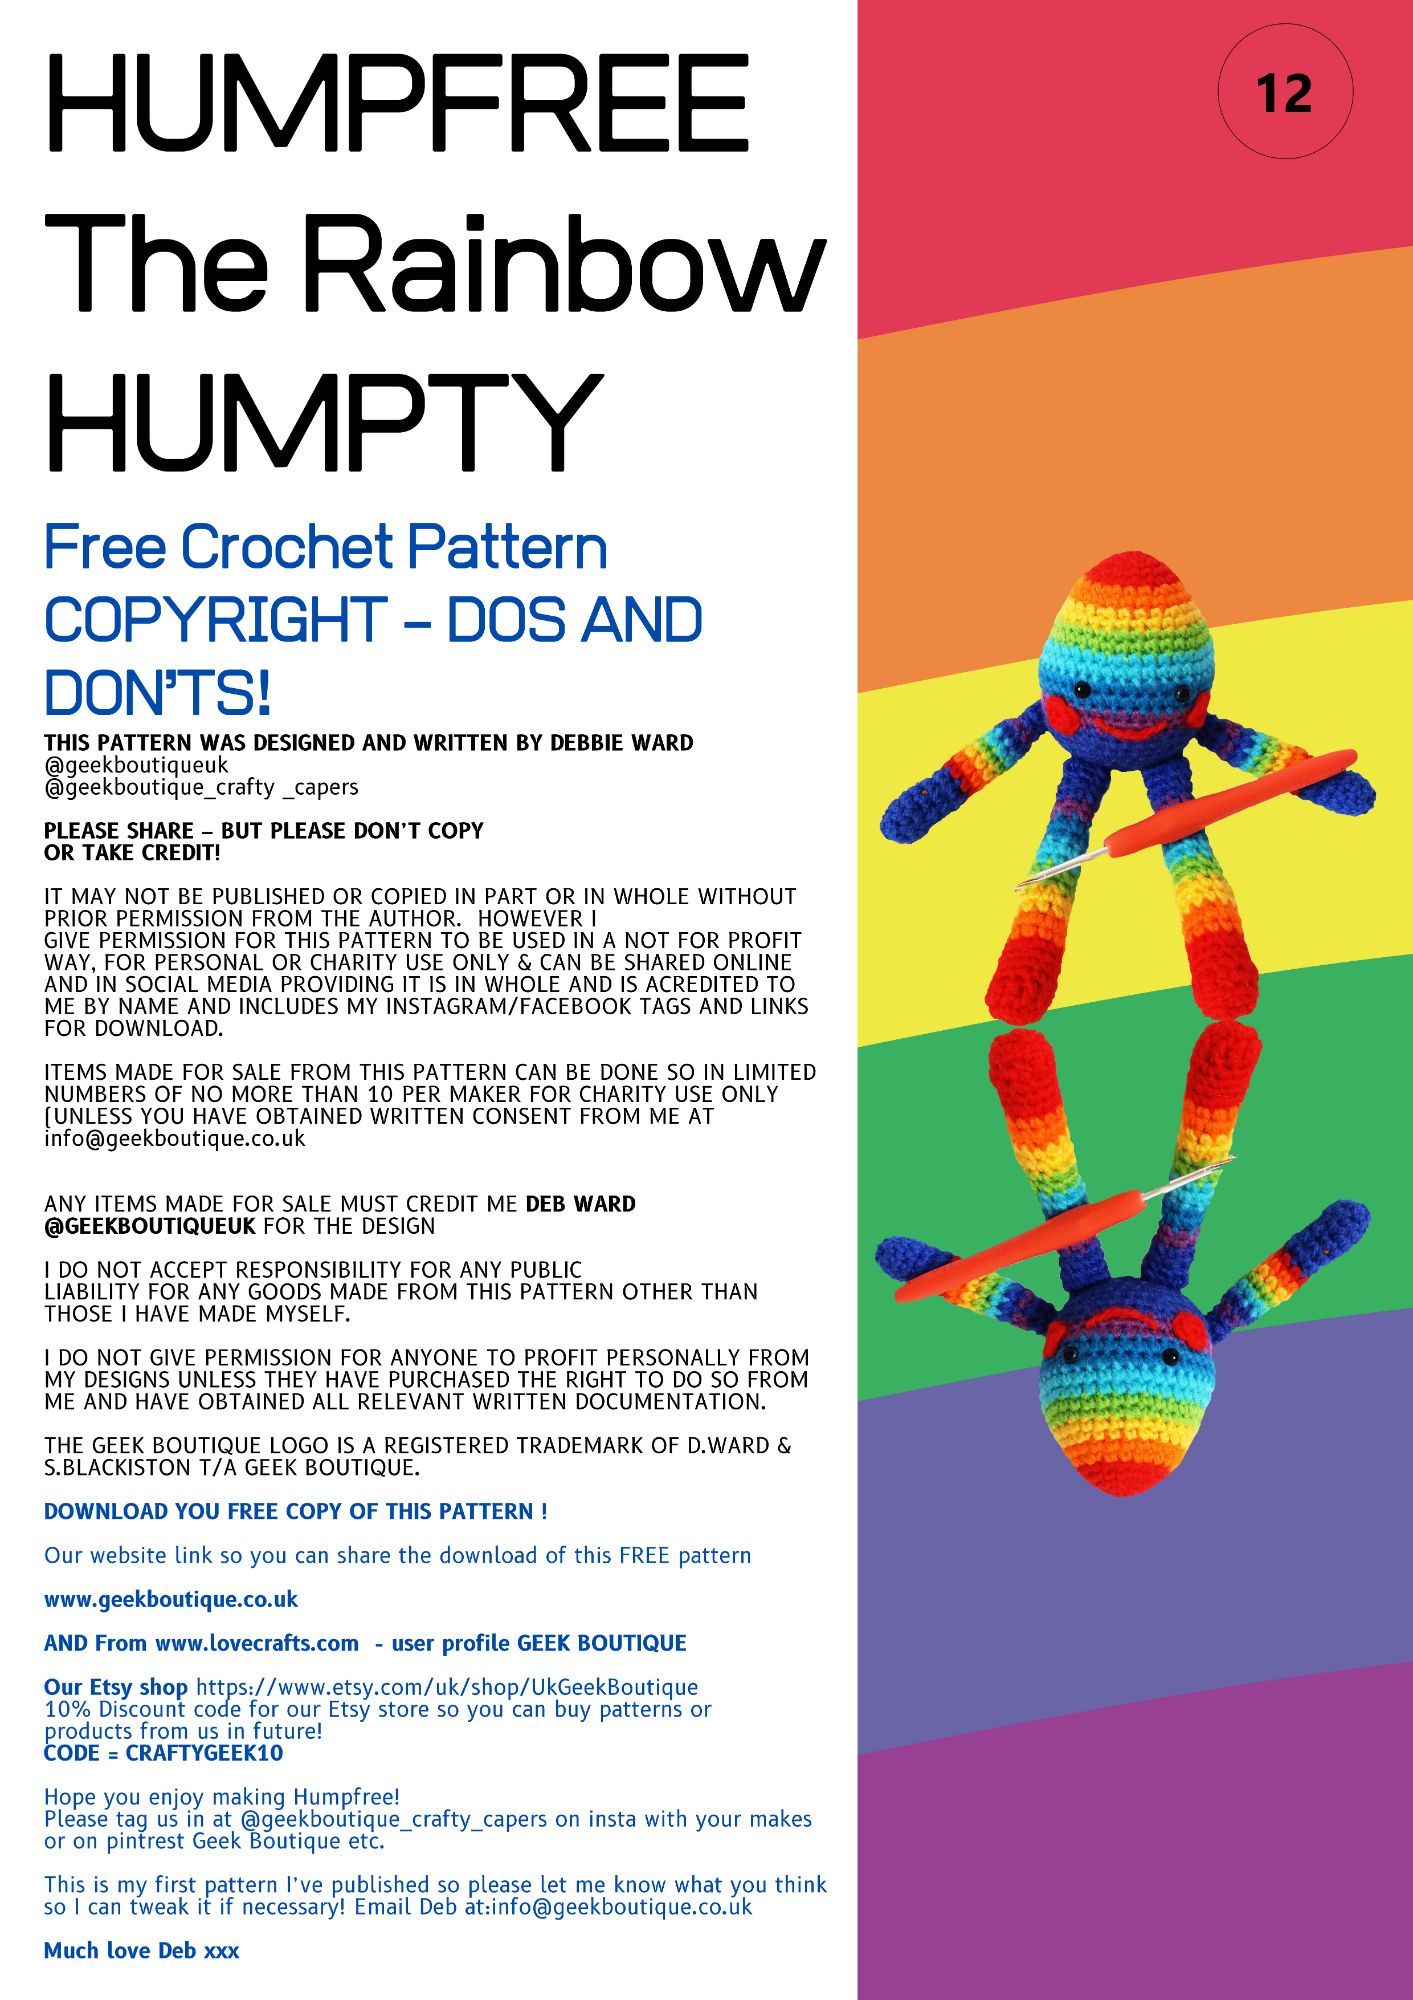 humpfree p12 copyright edit copy